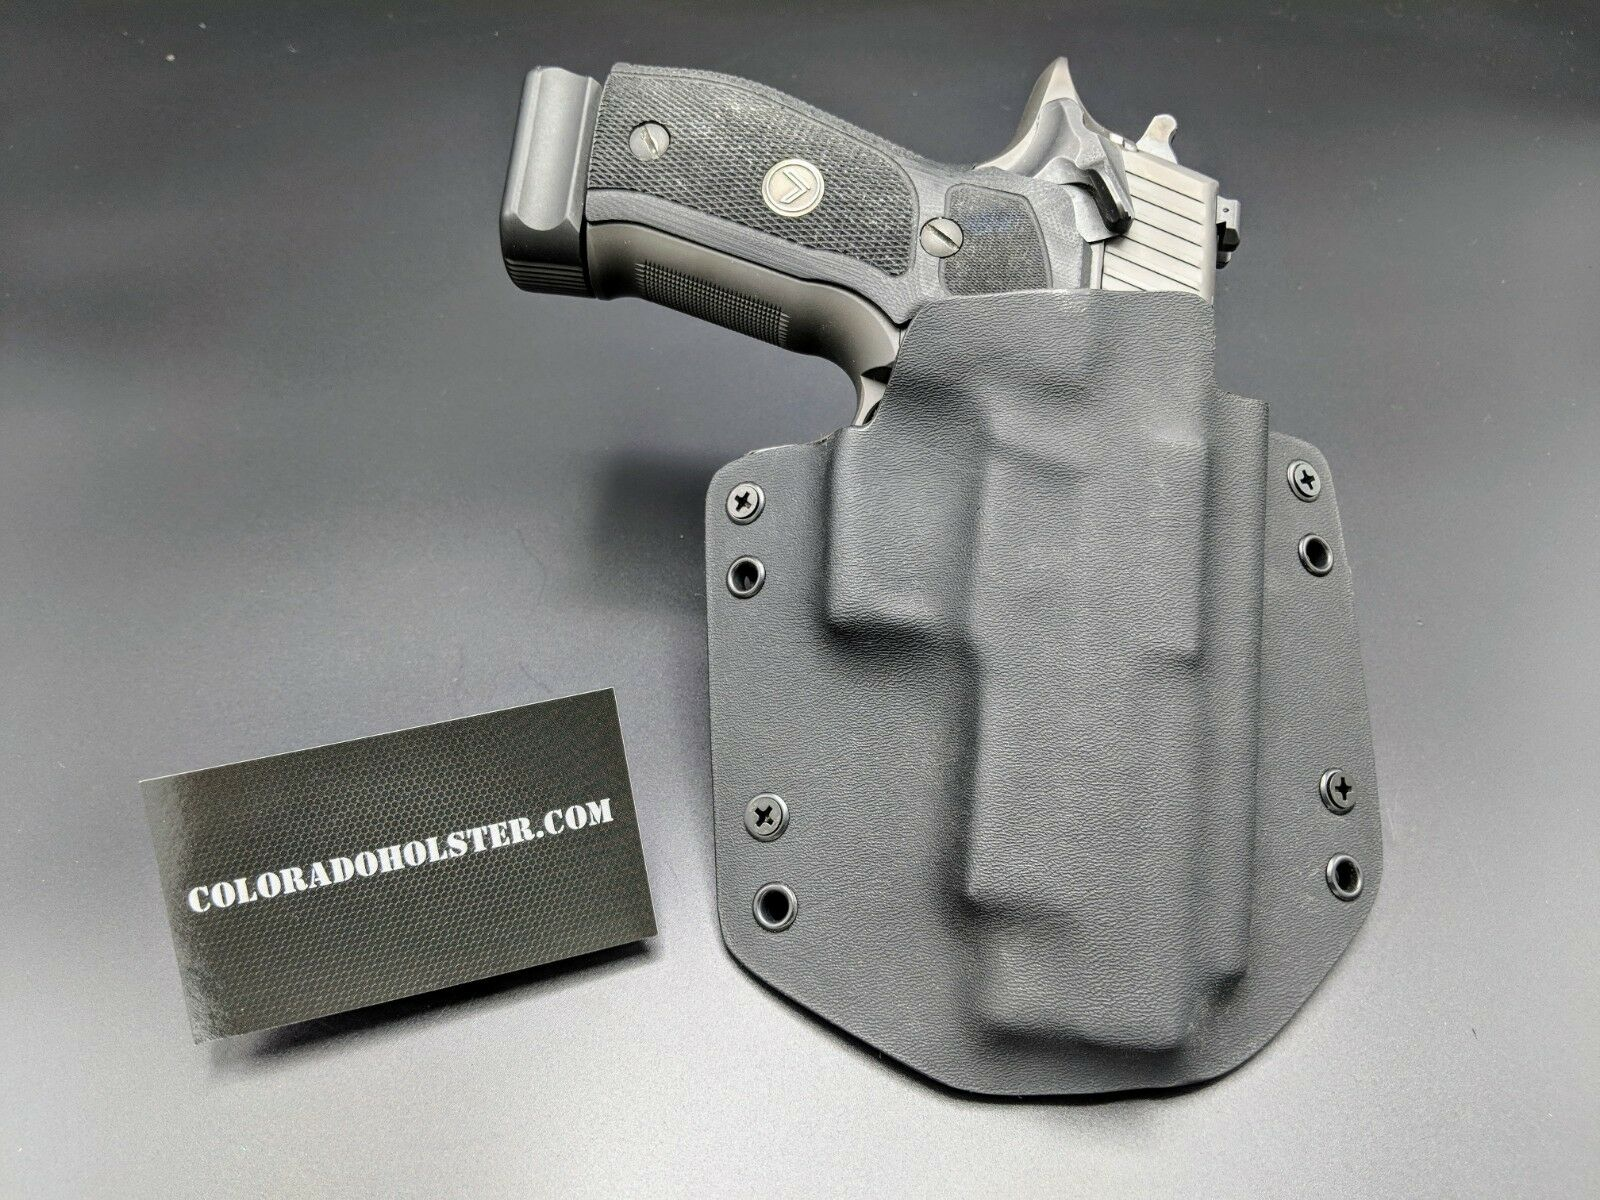 OWB Kydex CCW holsters - Fits Sig Sauer P226 9mm Legion SAO (Single Action)